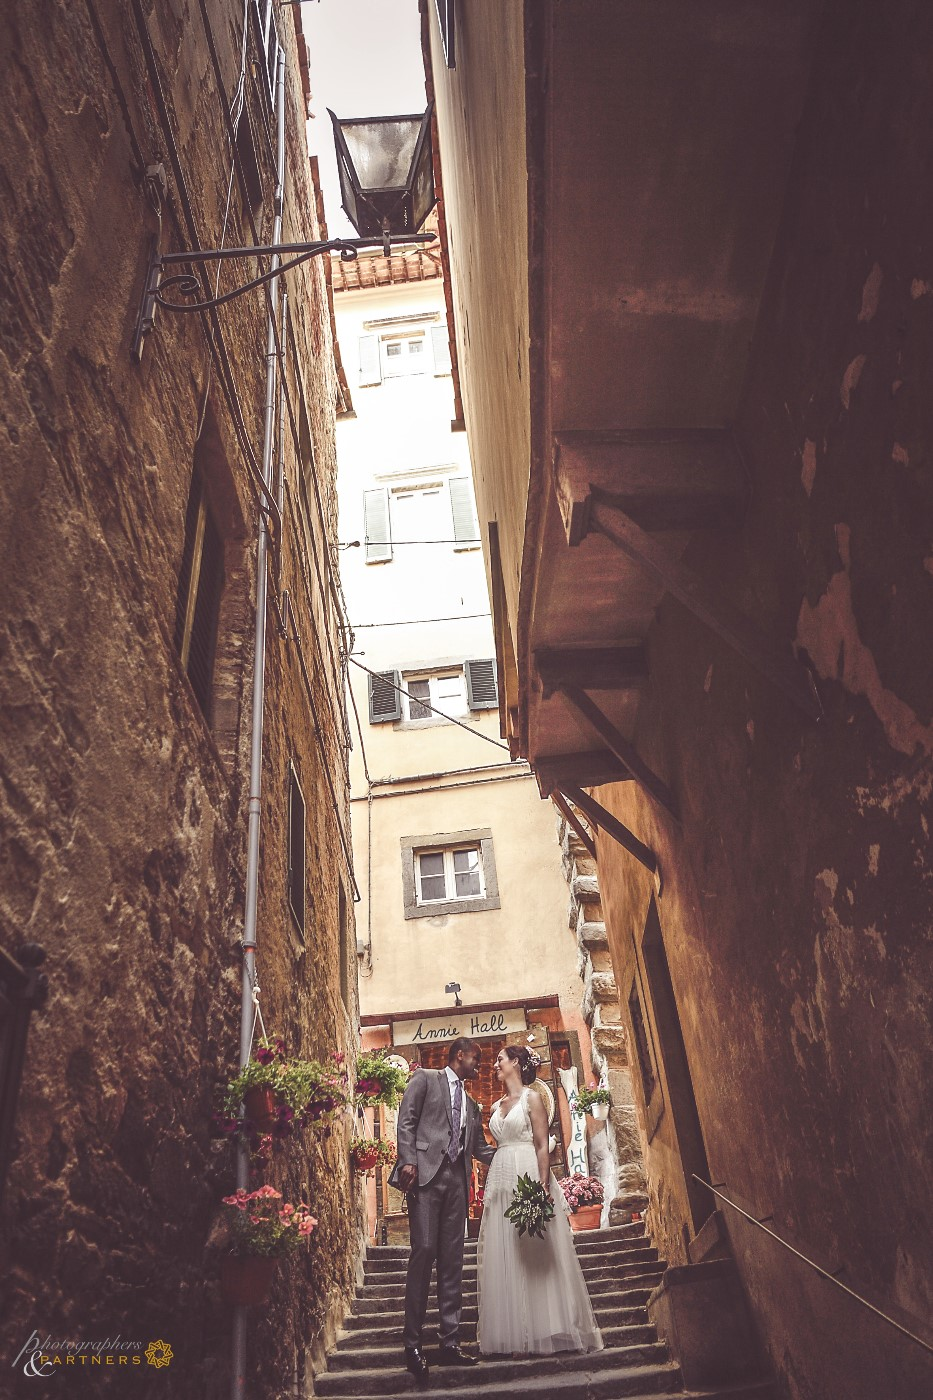 Some photos in the alleys of Cortona